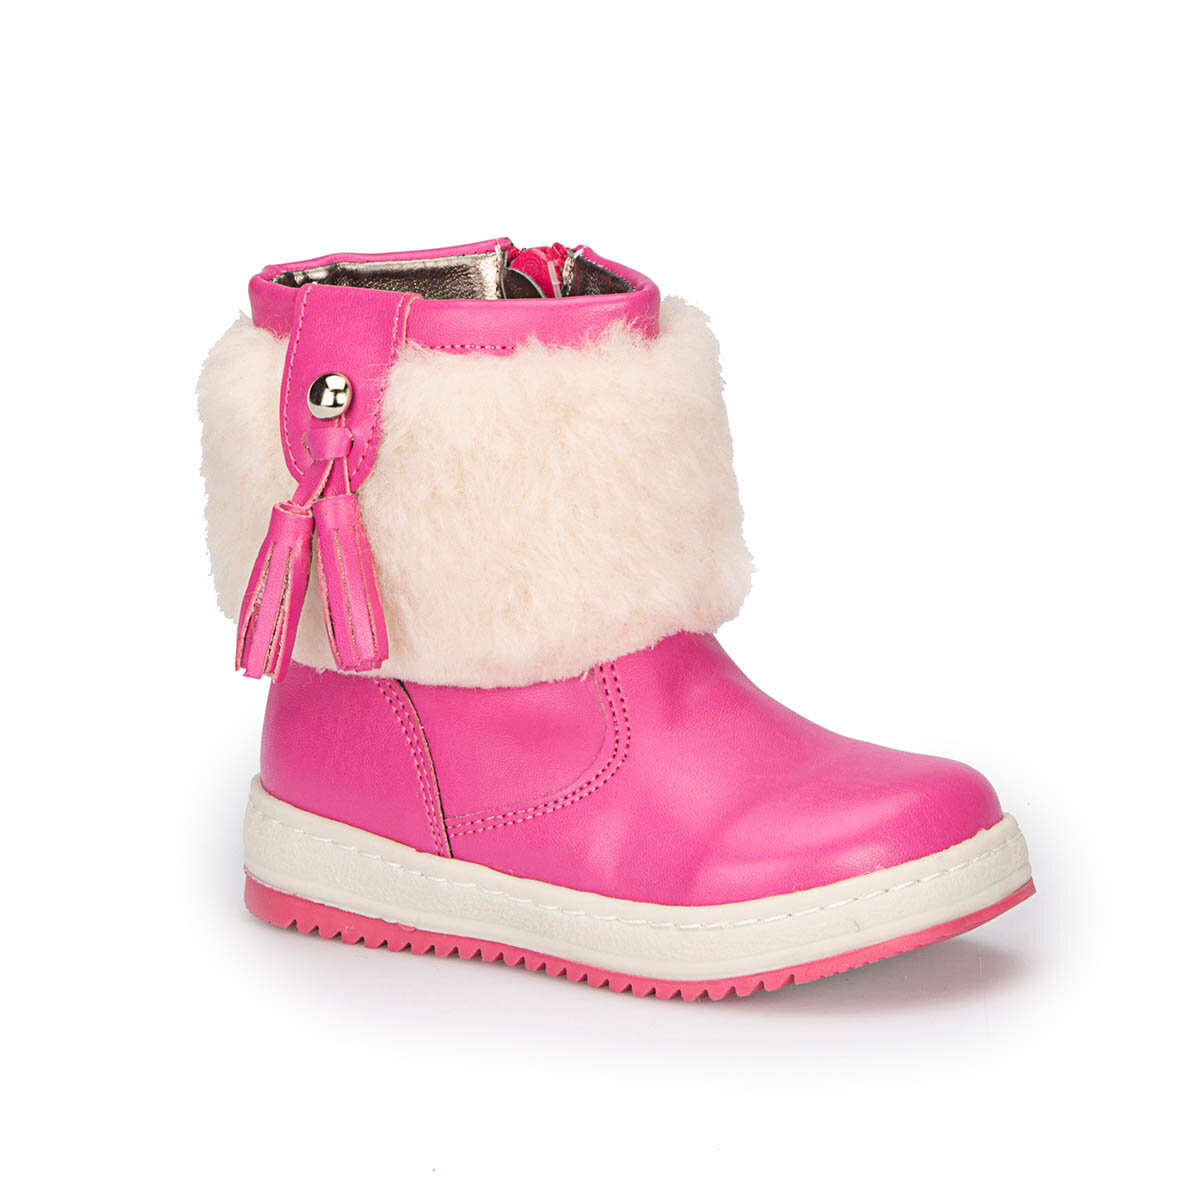 FLO 72.509537.B Fuchsia Female Child Classic Boots Polaris